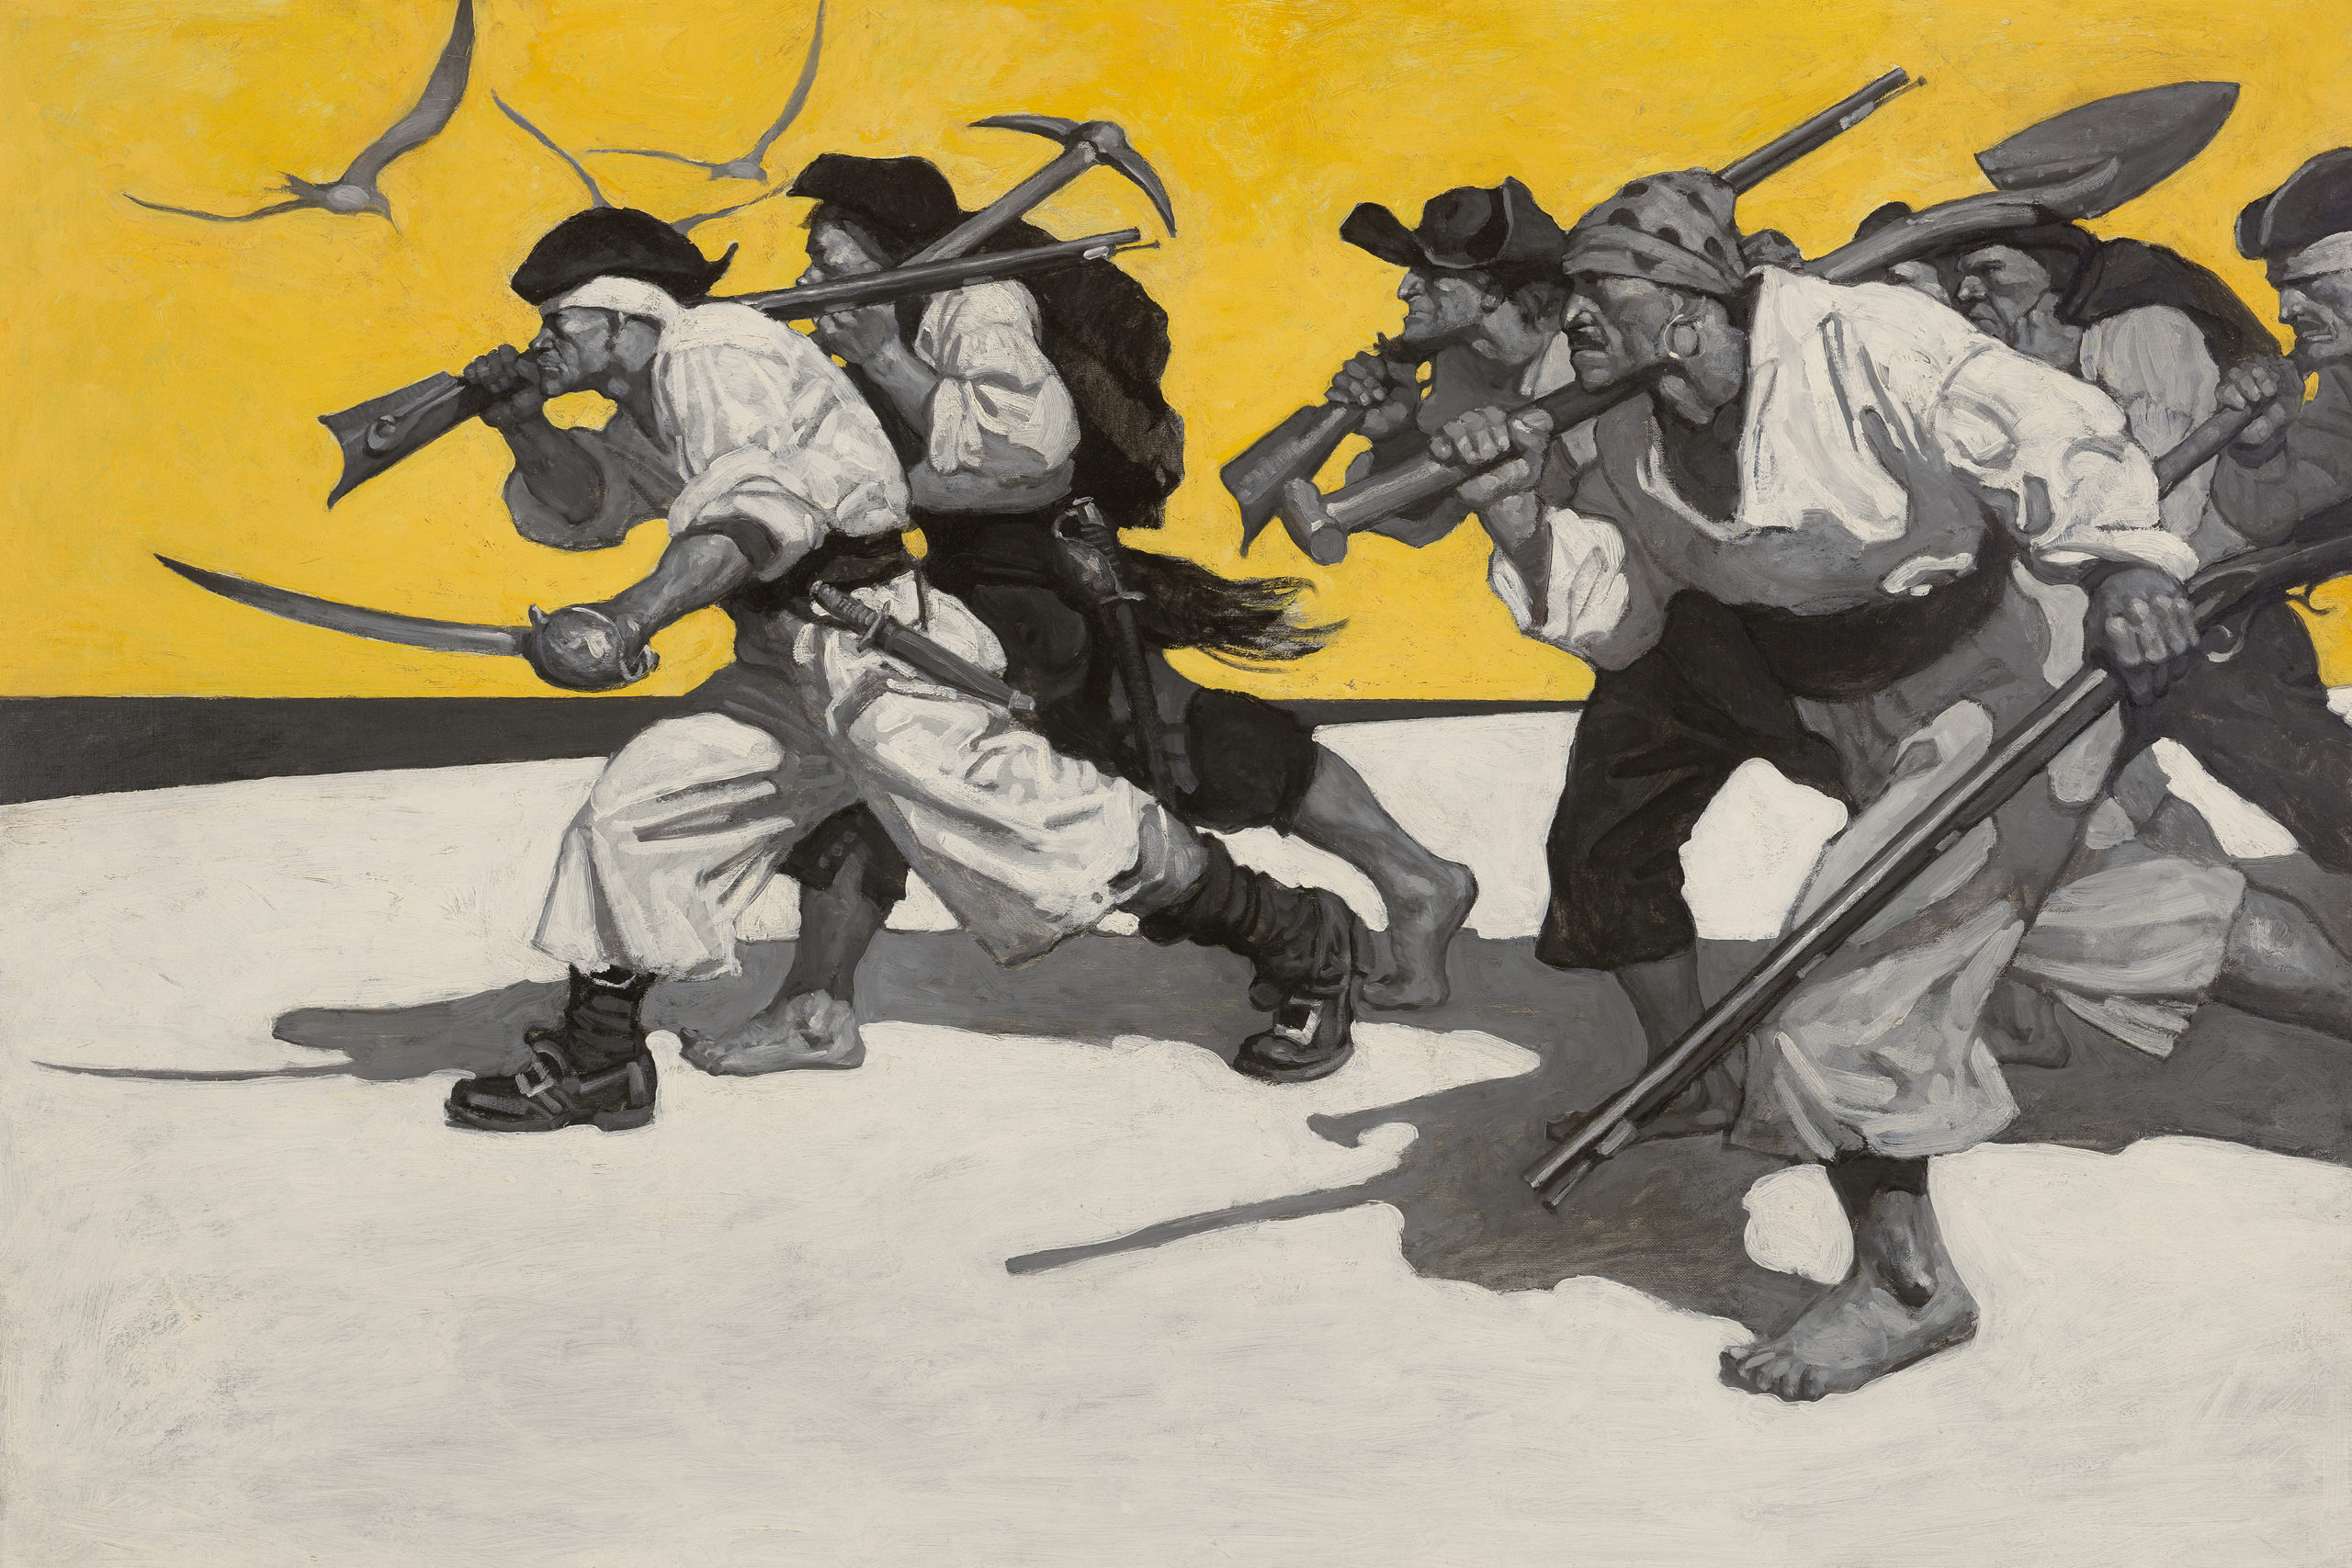 N. C. Wyeth: New Perspectives Exhibition